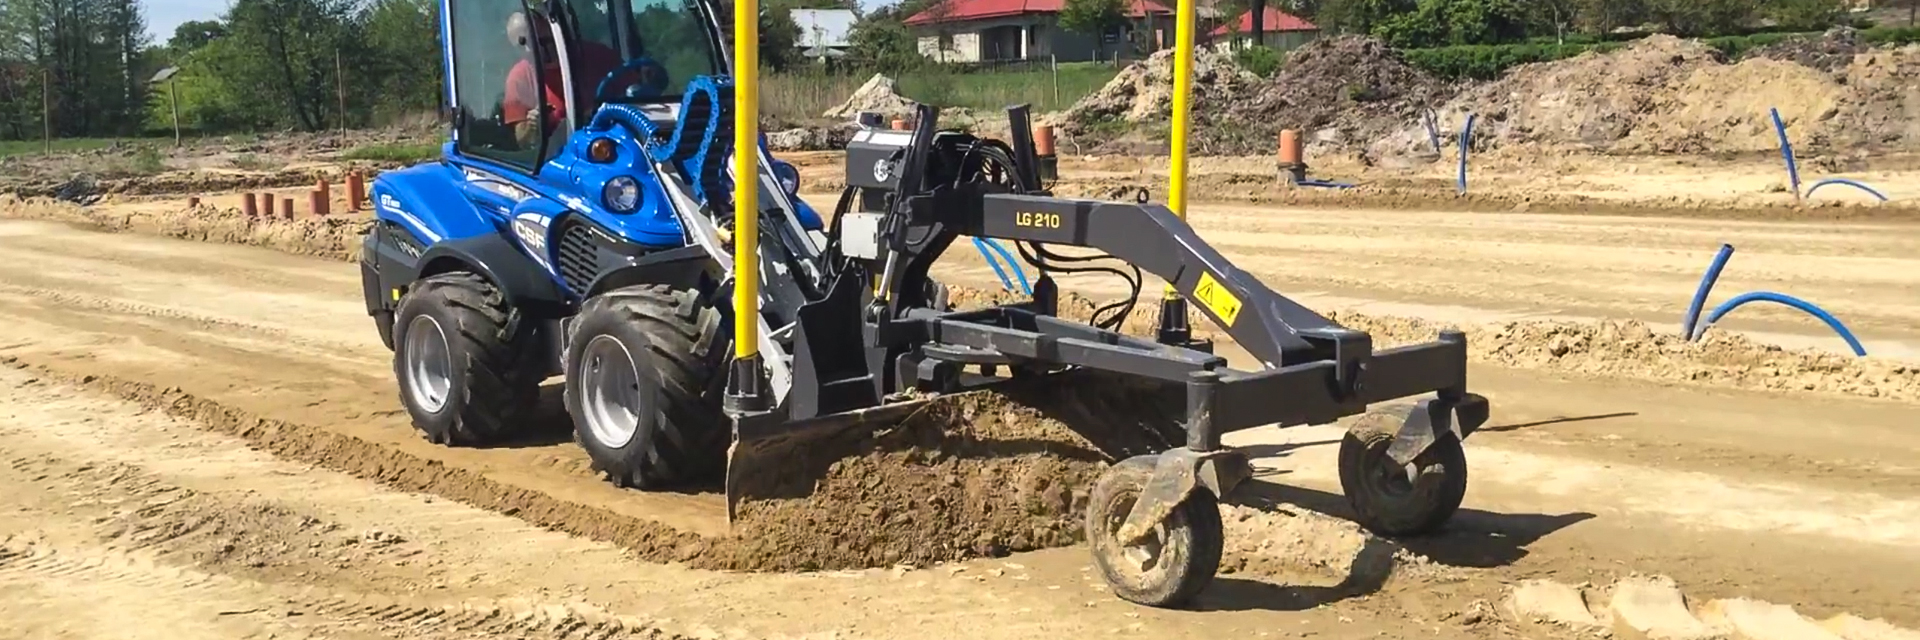 Multione mini grader